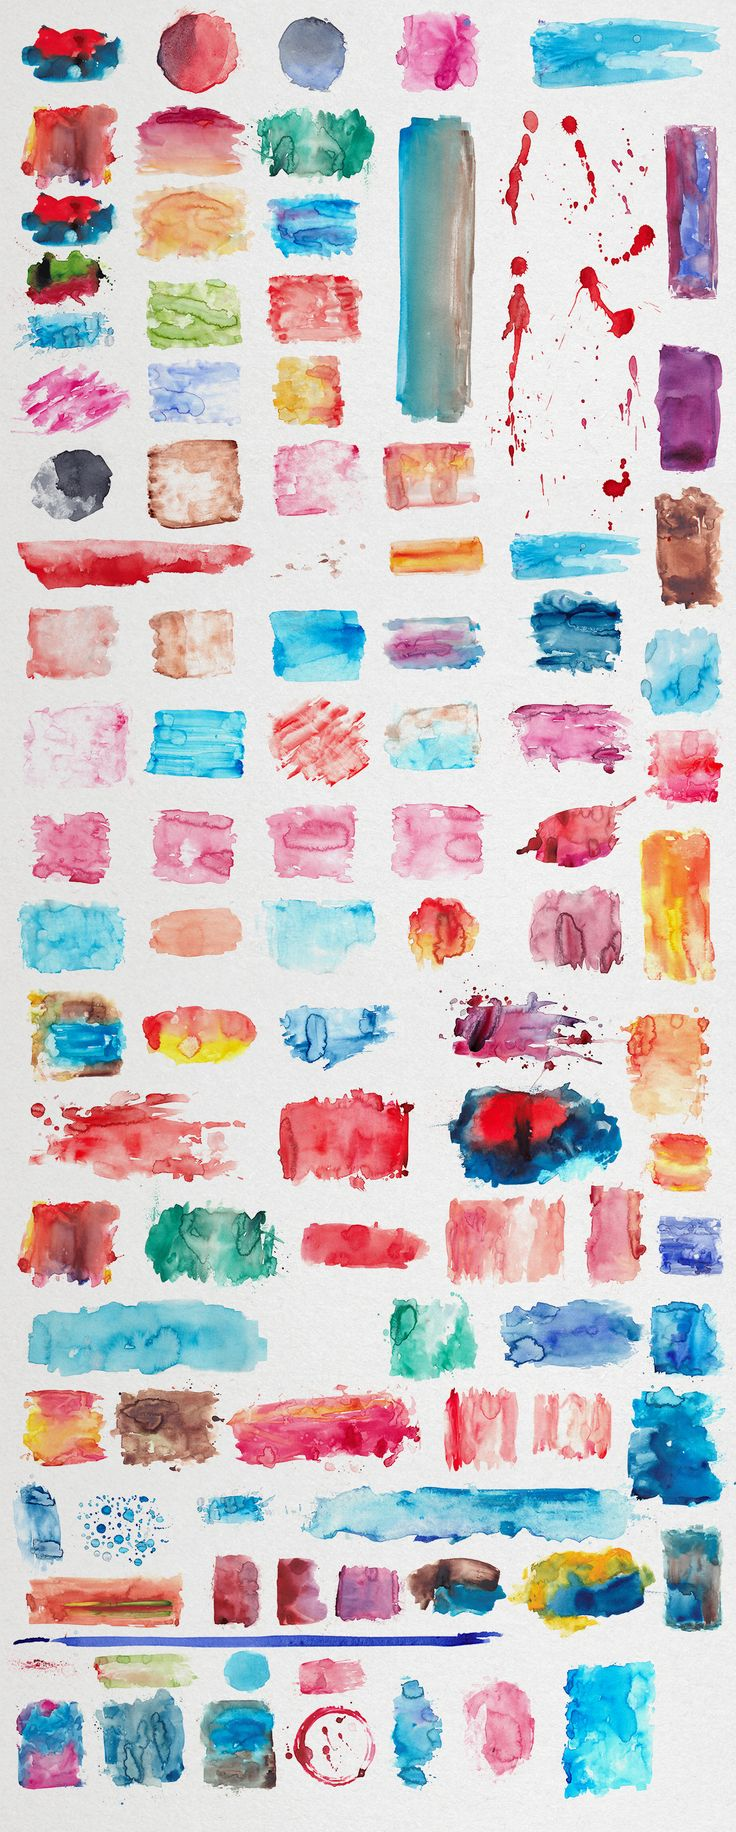 Watercolor Textures:  This item includes over 100 unique and handmade watercolor textures. All of them painted and scanned in high resolution. You can create awesome watercolor themed designs. Affordable price for awesome work. Ready for using with any canvas size and format. For prints, logos and any graphic design works.